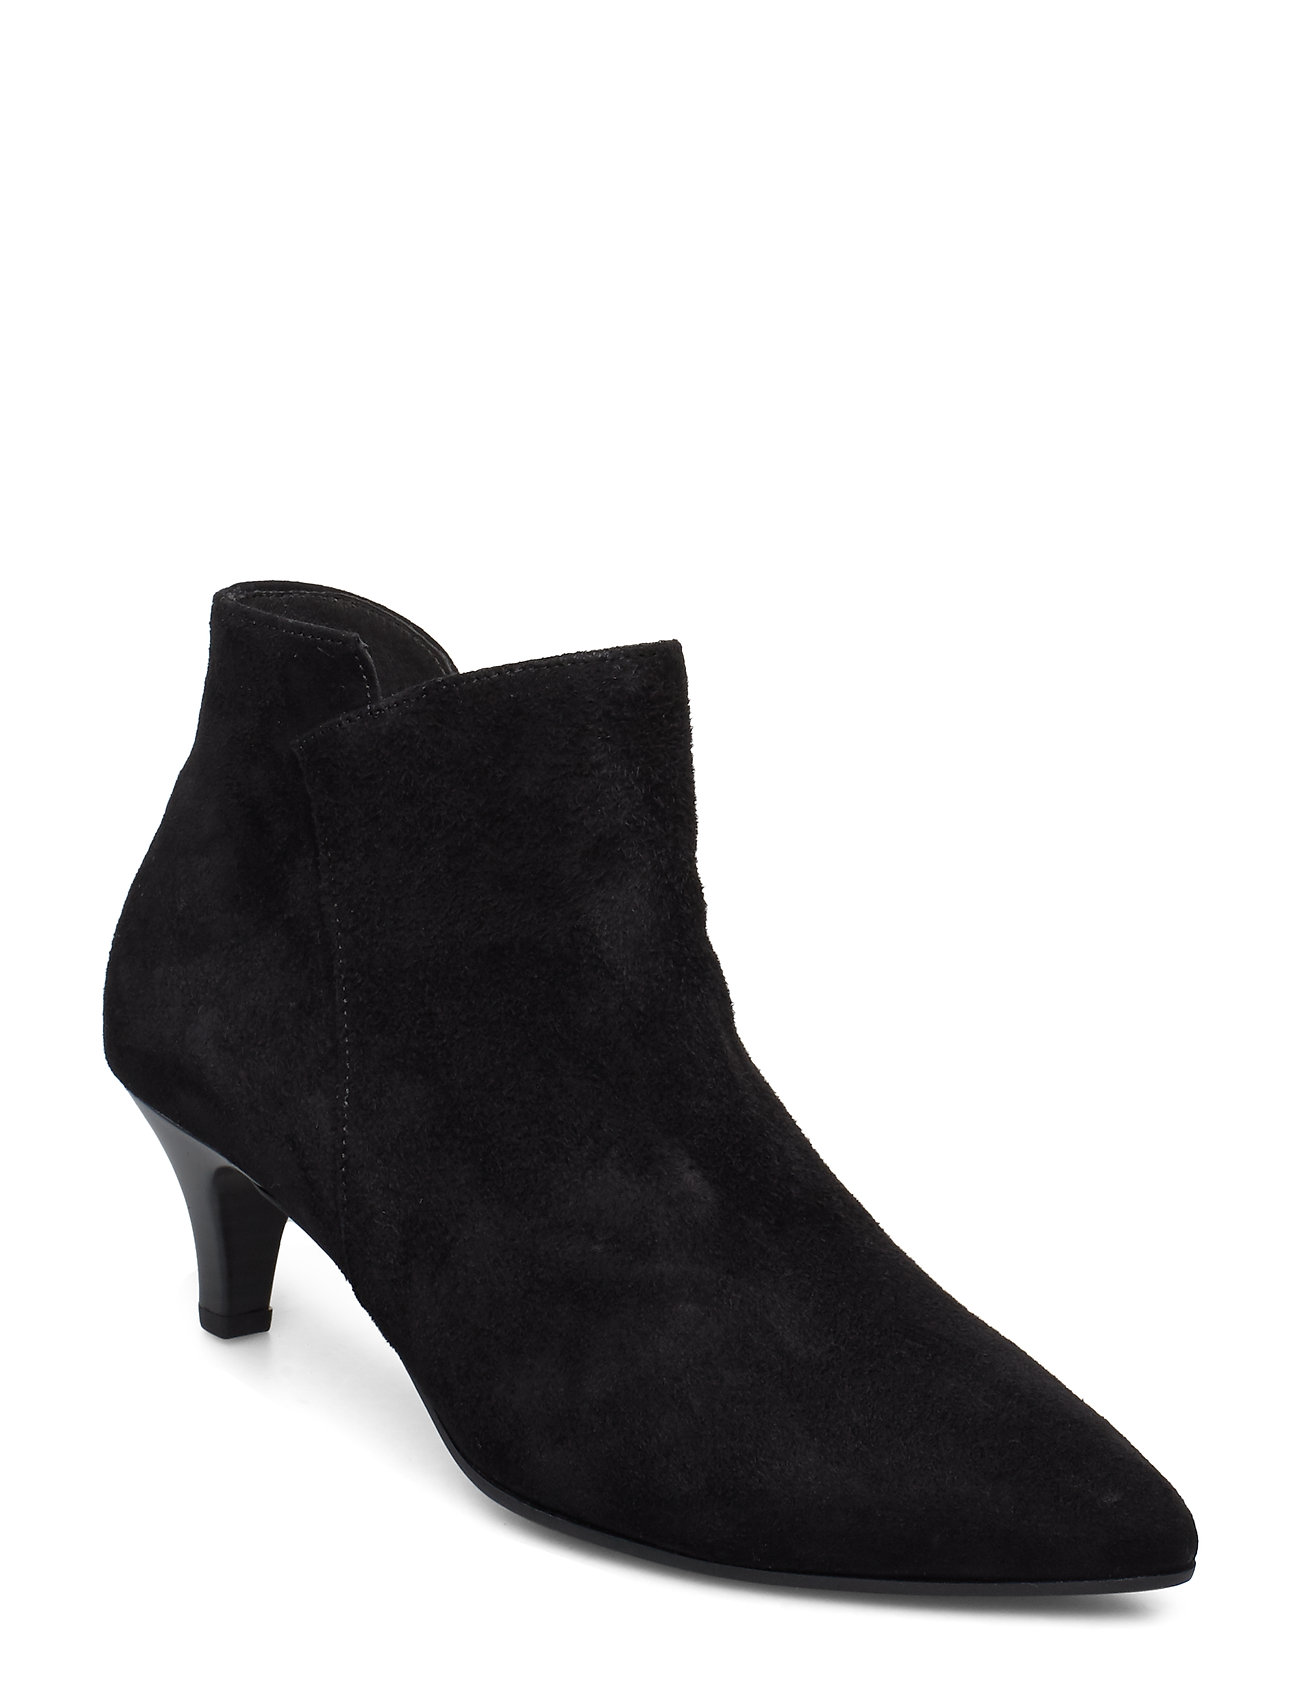 Image of Ankle Boots Shoes Boots Ankle Boots Ankle Boot - Heel Sort Gabor (3406225593)